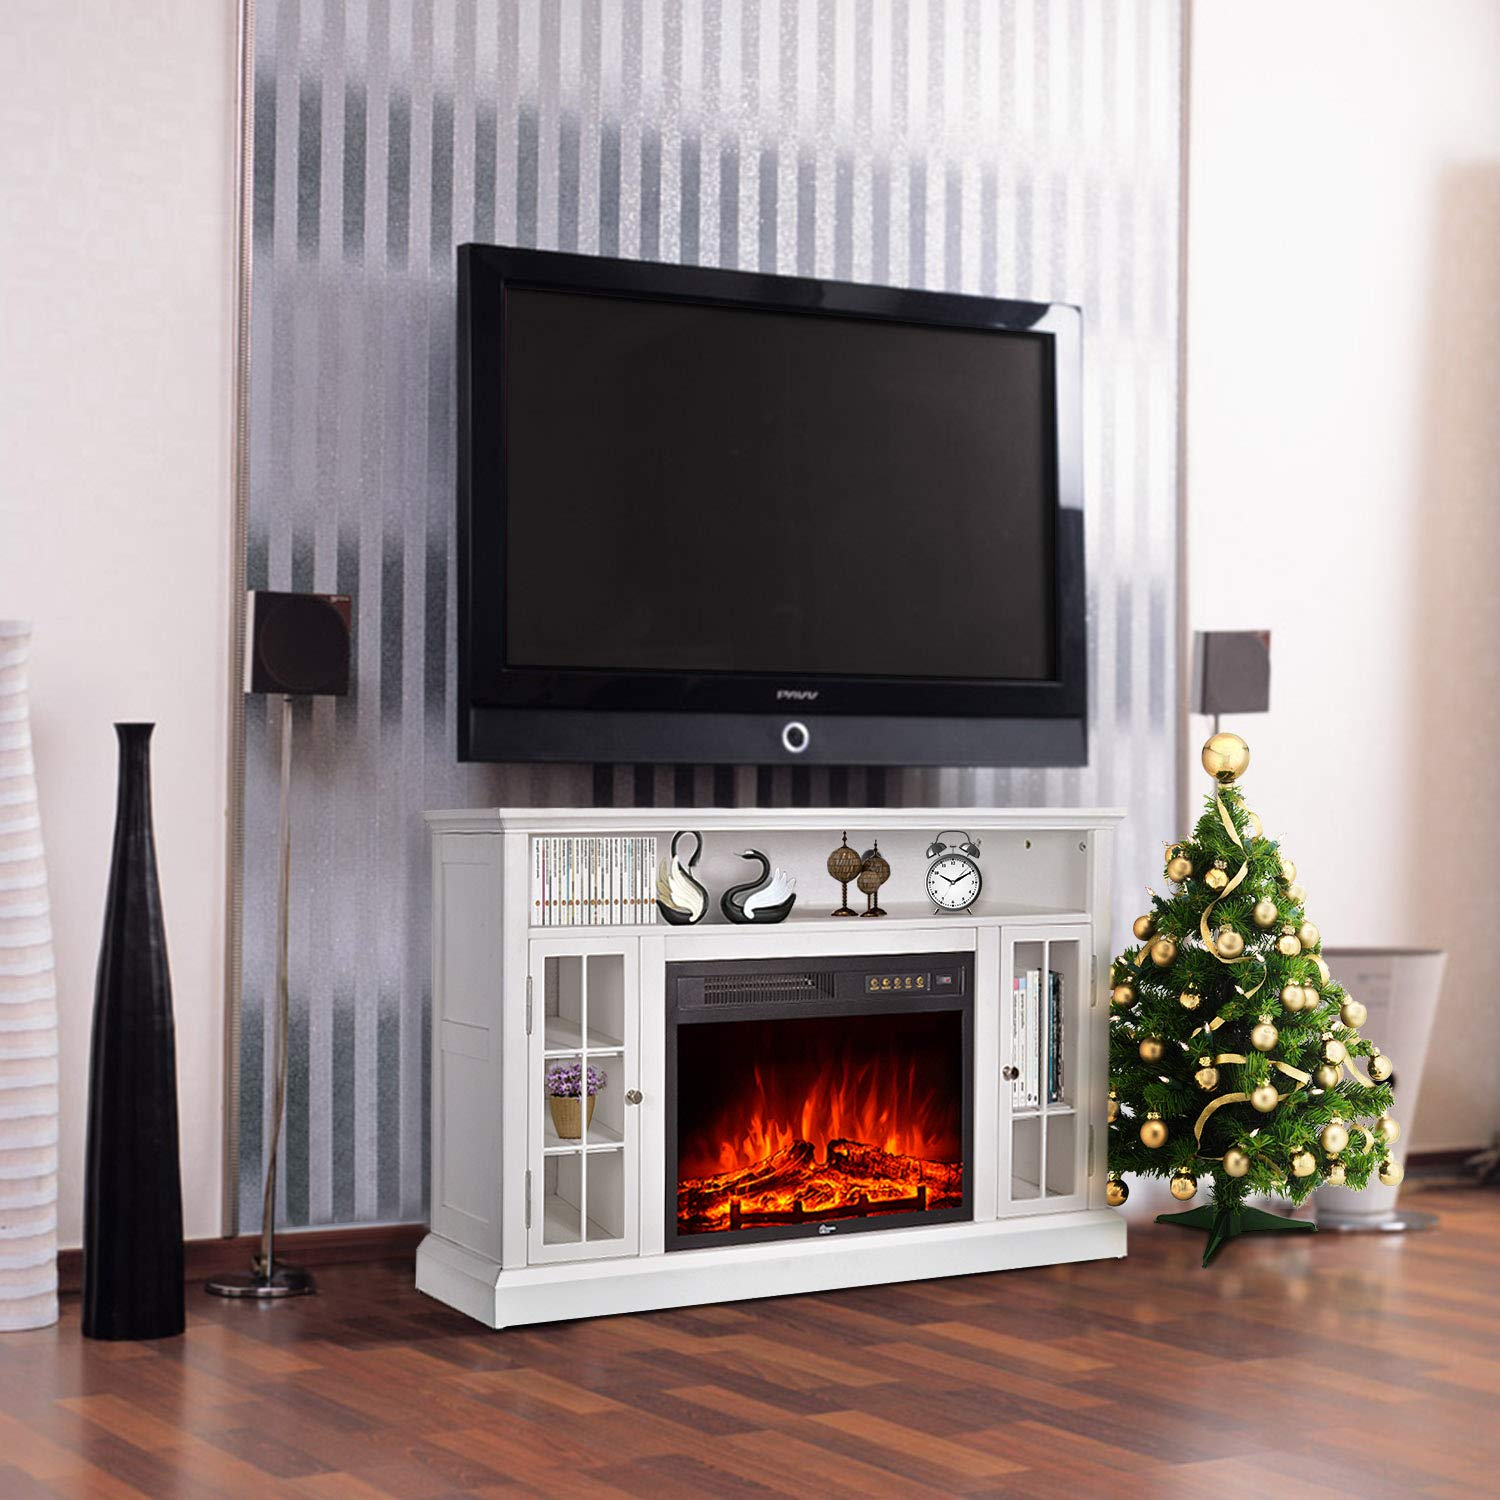 GMHome 46 Inches TV Stand Electric Fireplace Insert Media Console with Bookcase with Remote Control Electric Fireplace - Ivory Finish